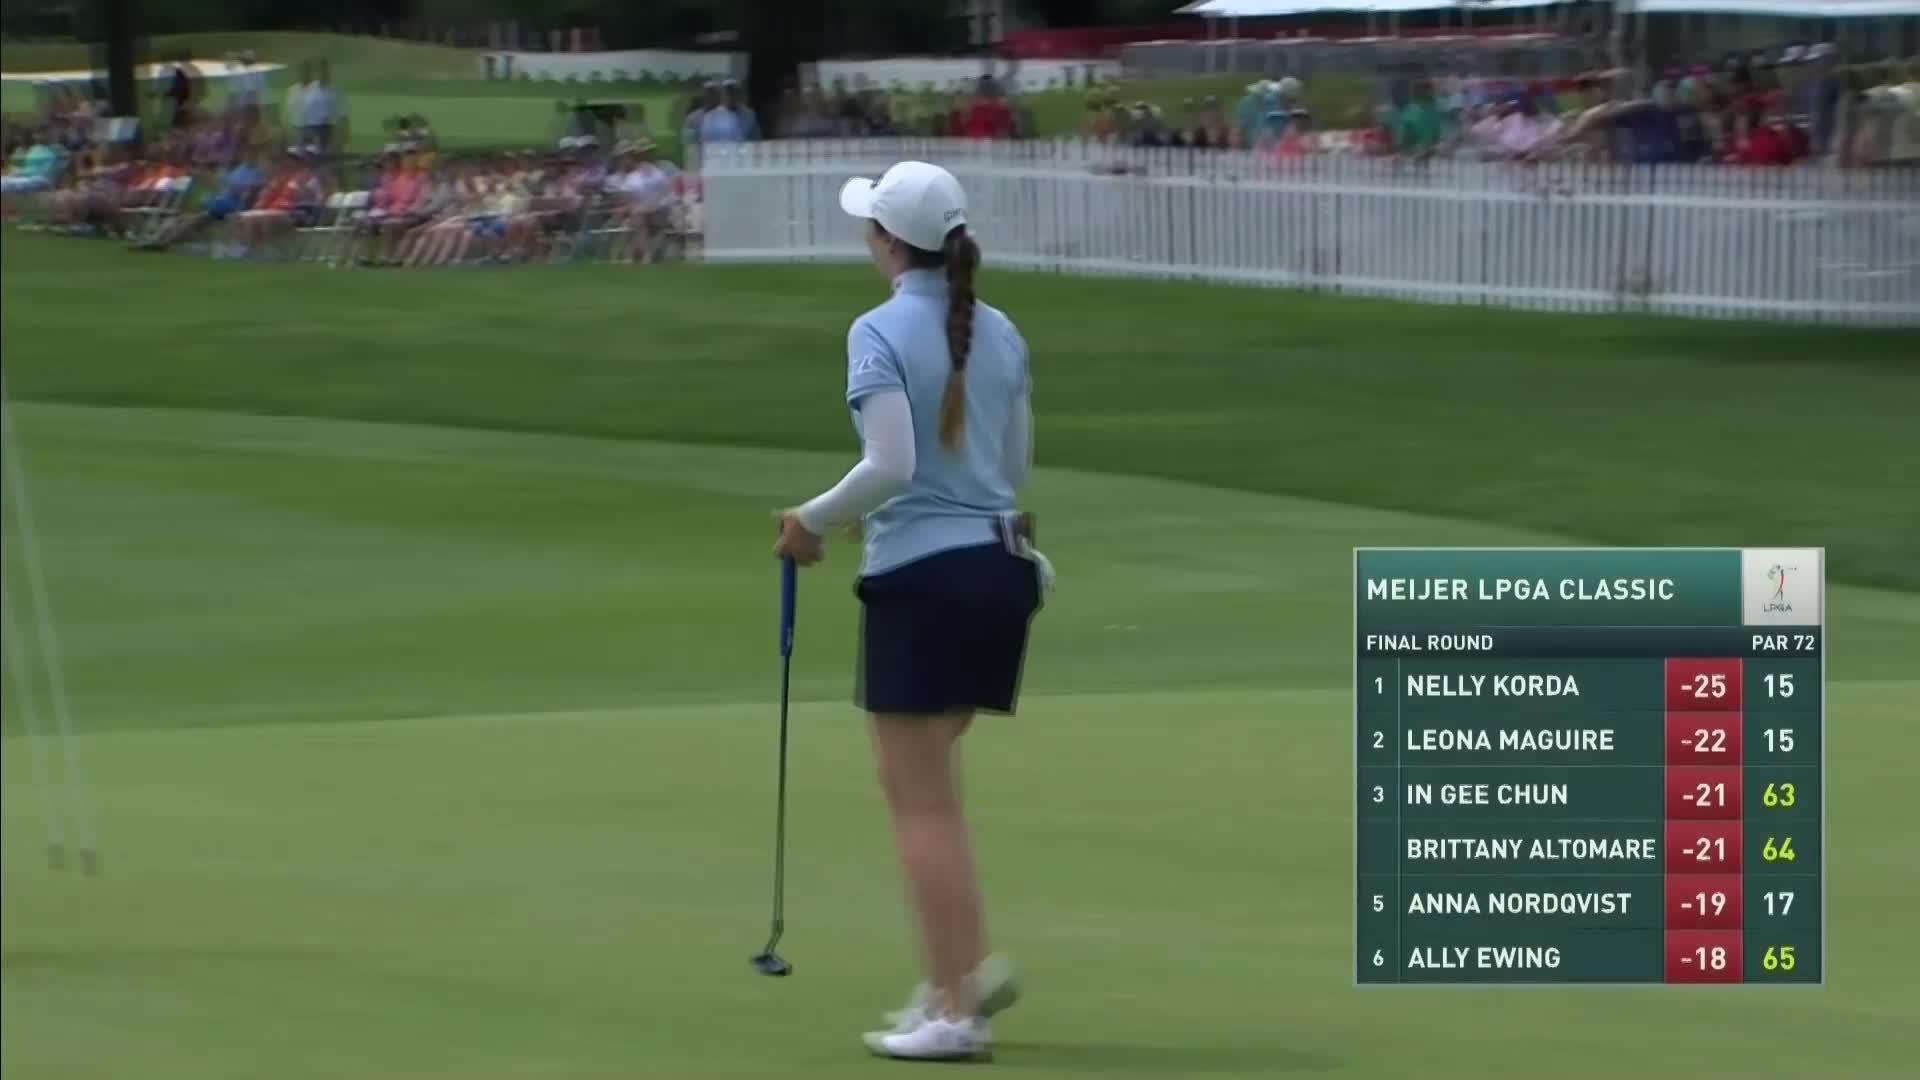 Brittany Altomare Final Round Highlights at the 2021 Meijer LPGA Classic